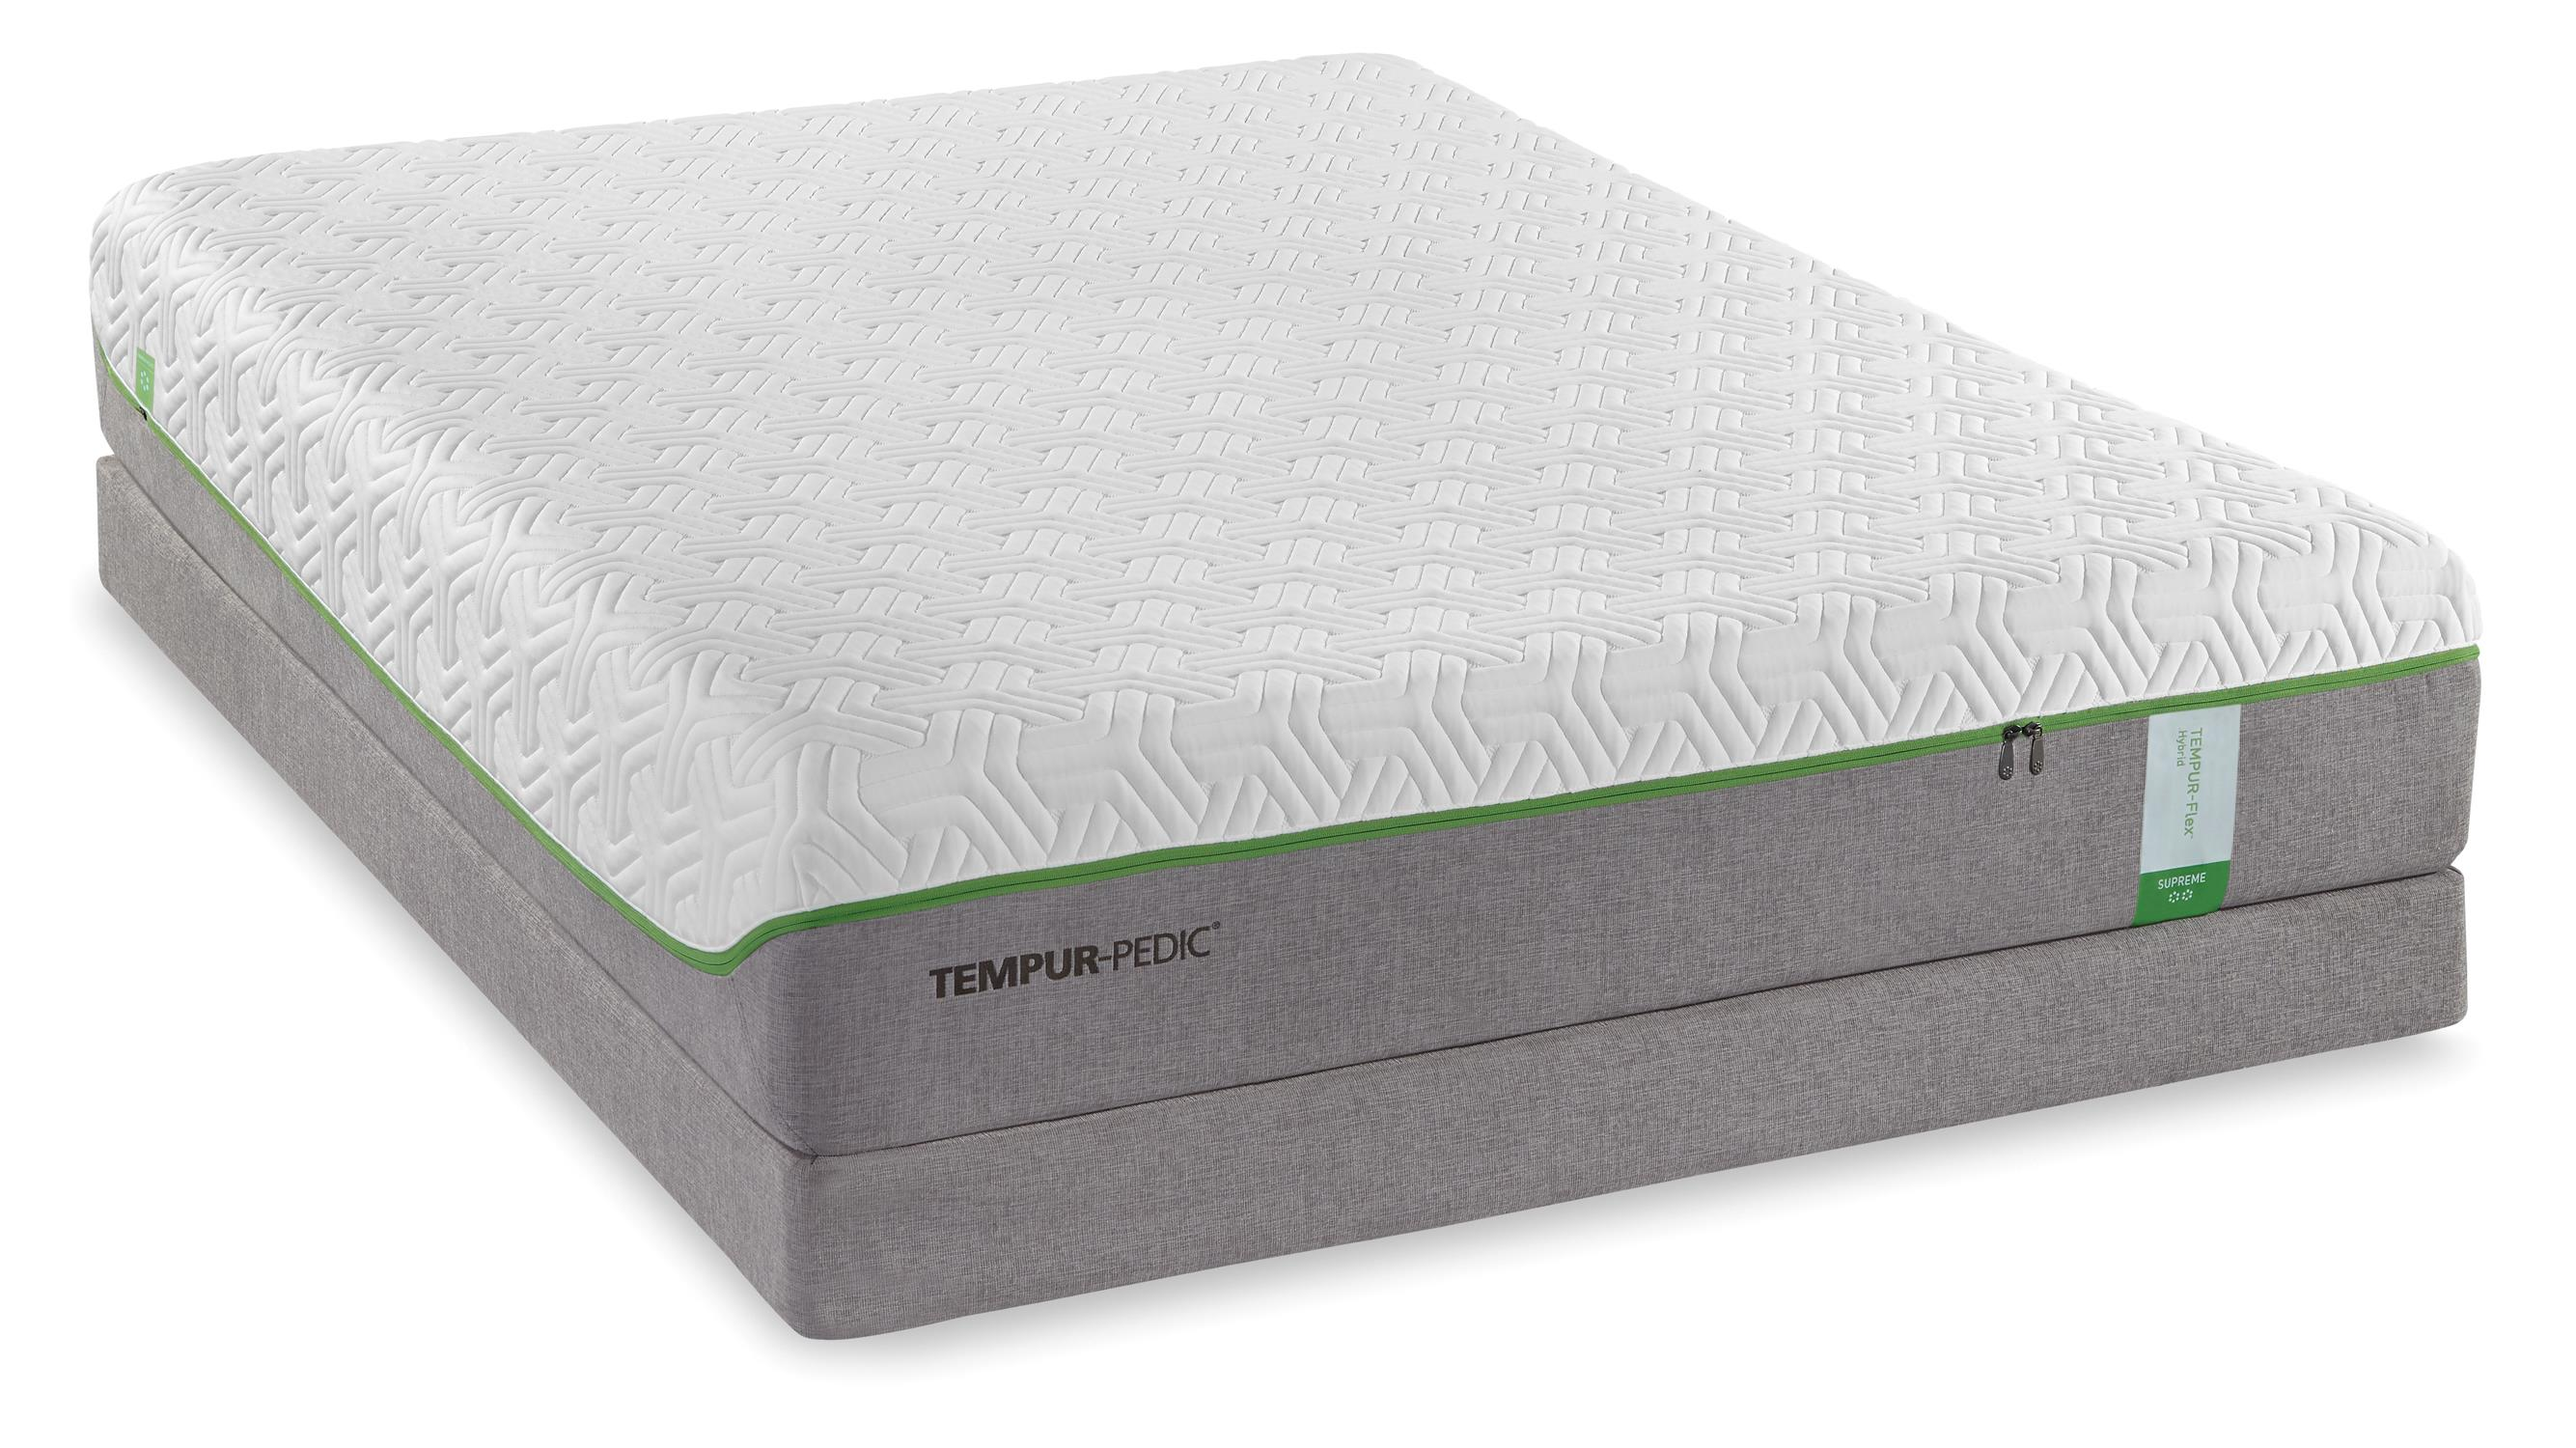 Tempur-Pedic® TEMPUR-Flex Supreme Twin Extra Long Medium Plush Mattress Set - Item Number: 10116120+21510120